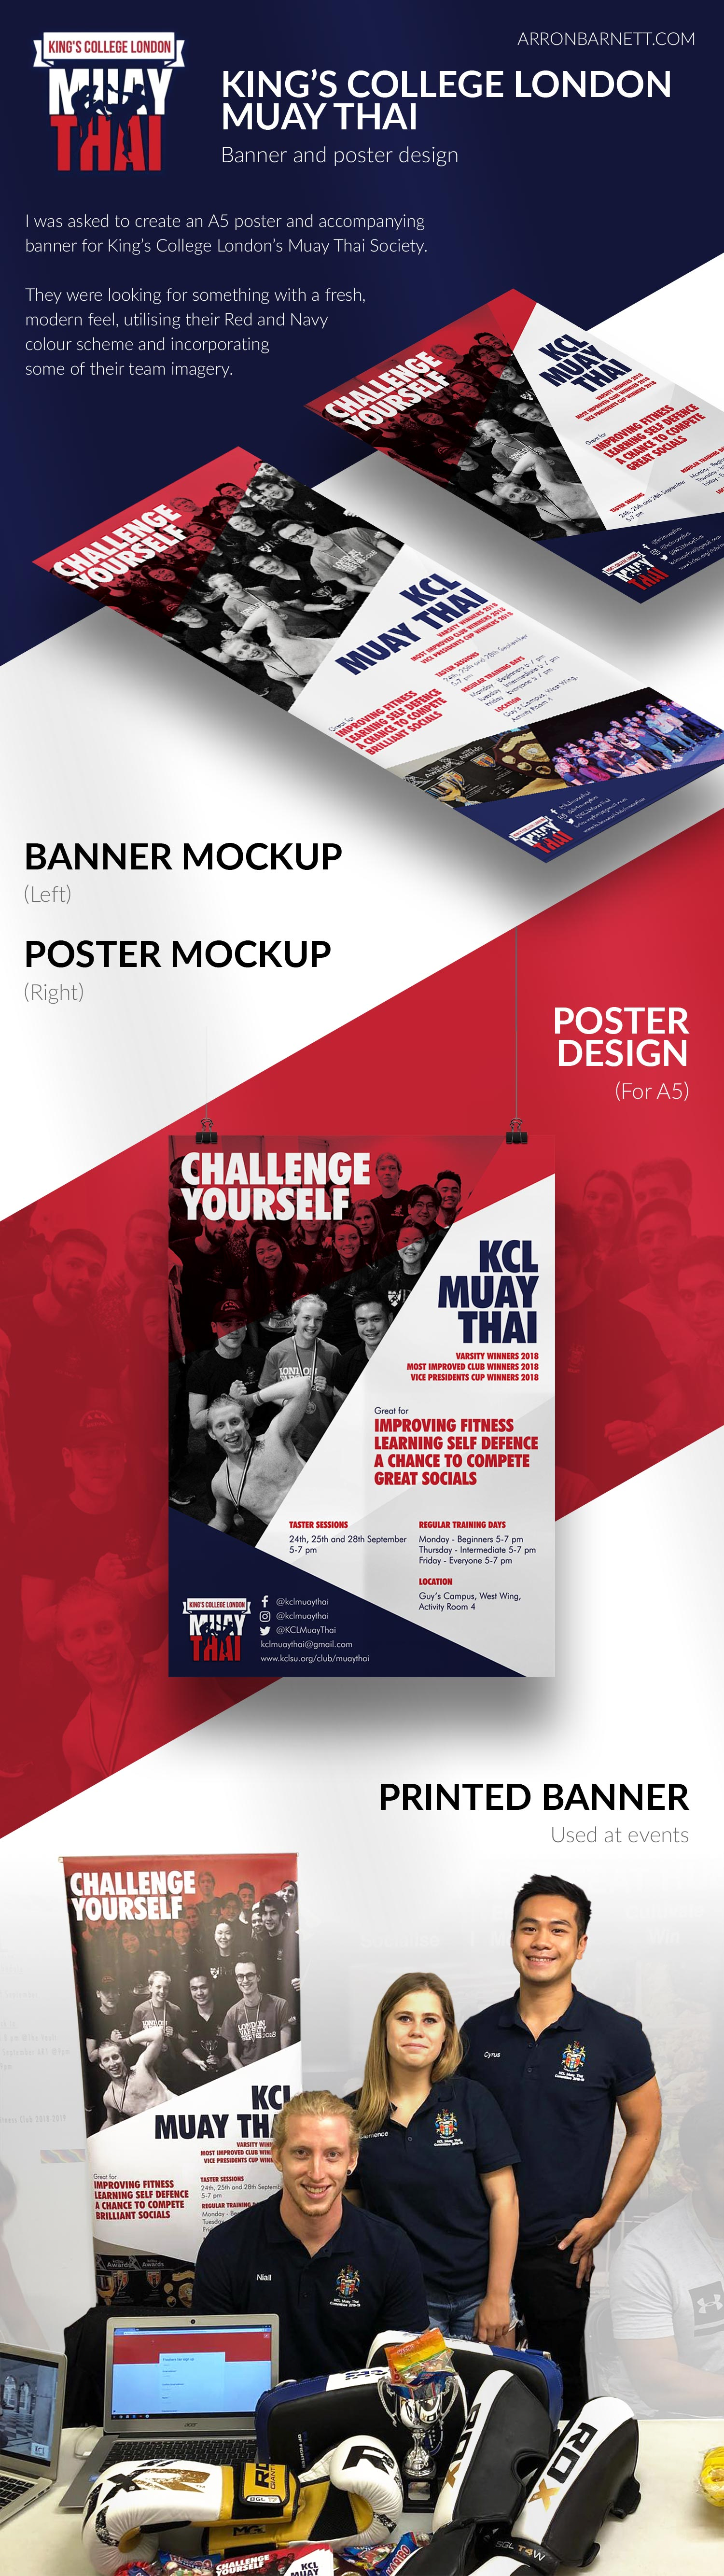 KCL Muay Thai Poster and Banner Design